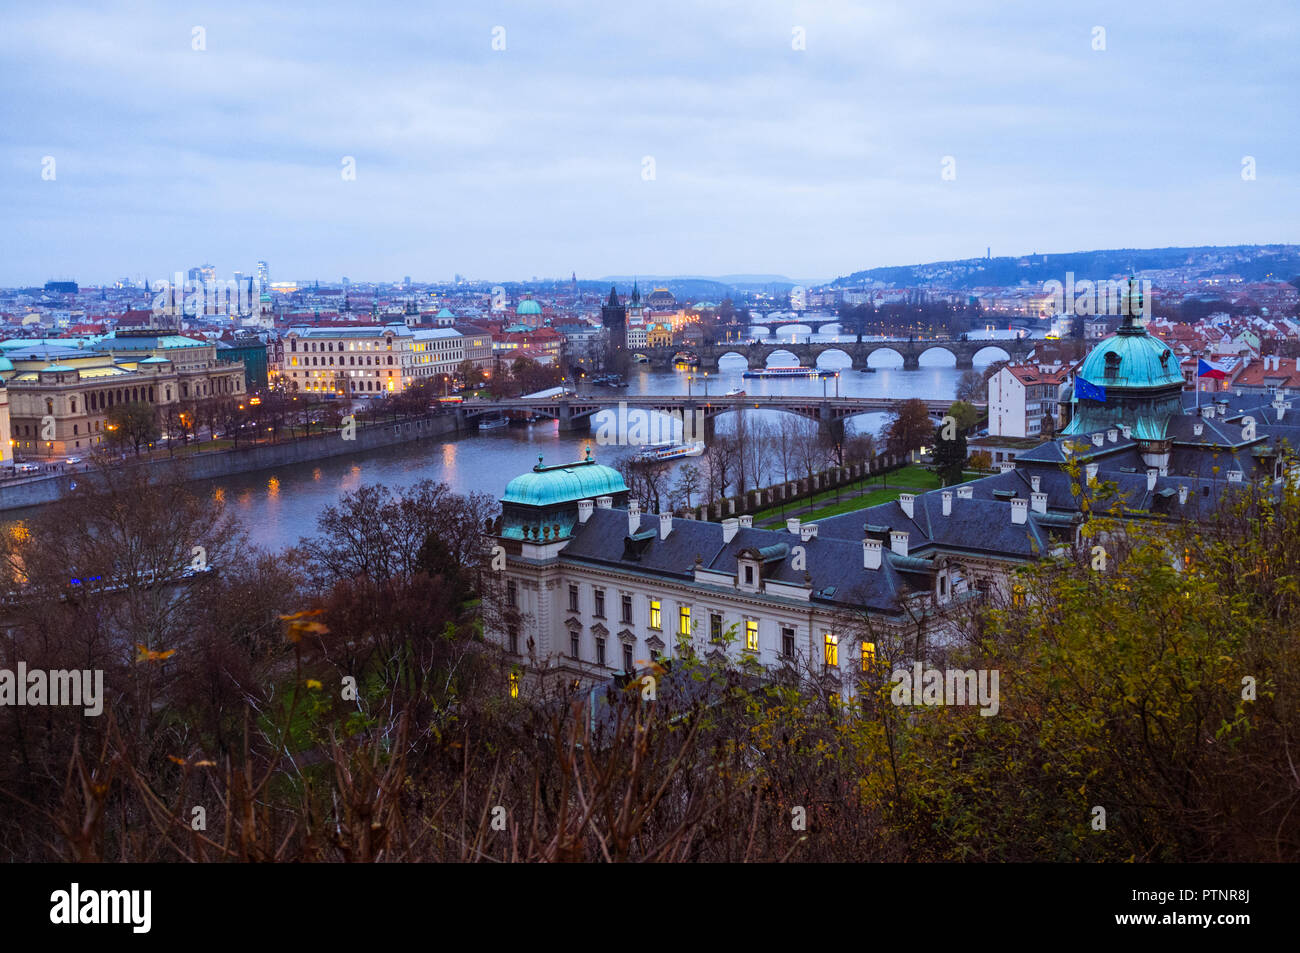 Prague, Czech Republic : High angle view of the bridges over the River Vltava, as seen from Letná hill. Stock Photo